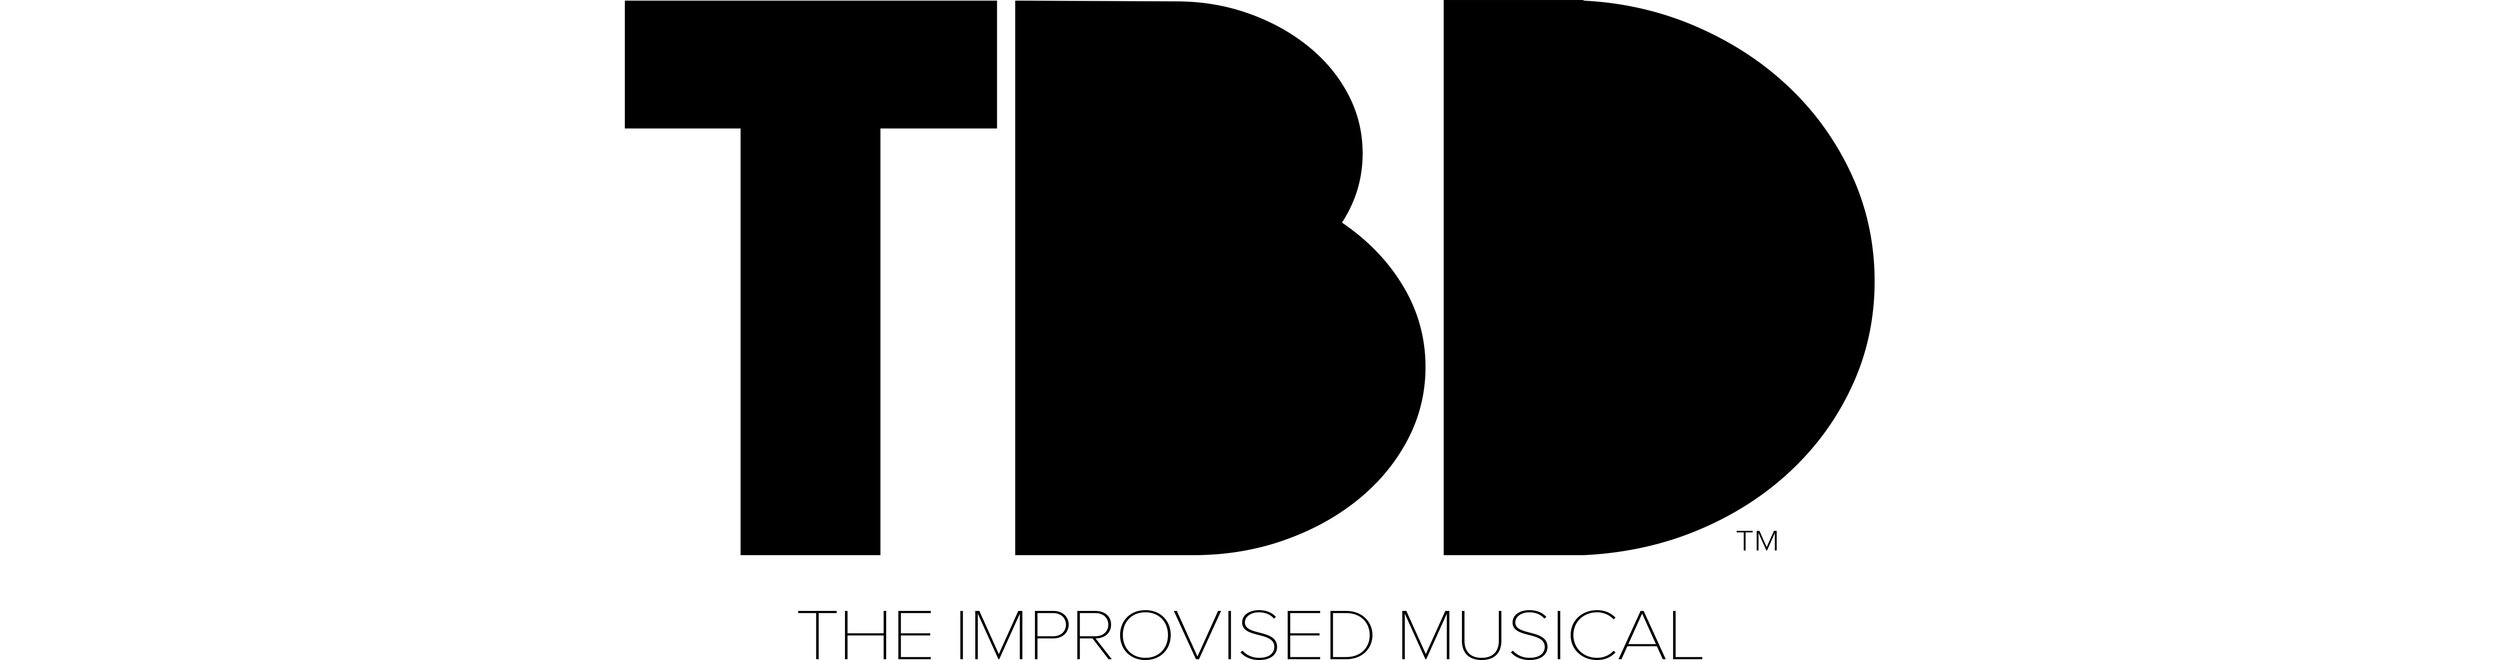 tbd-logo-website-header.jpg